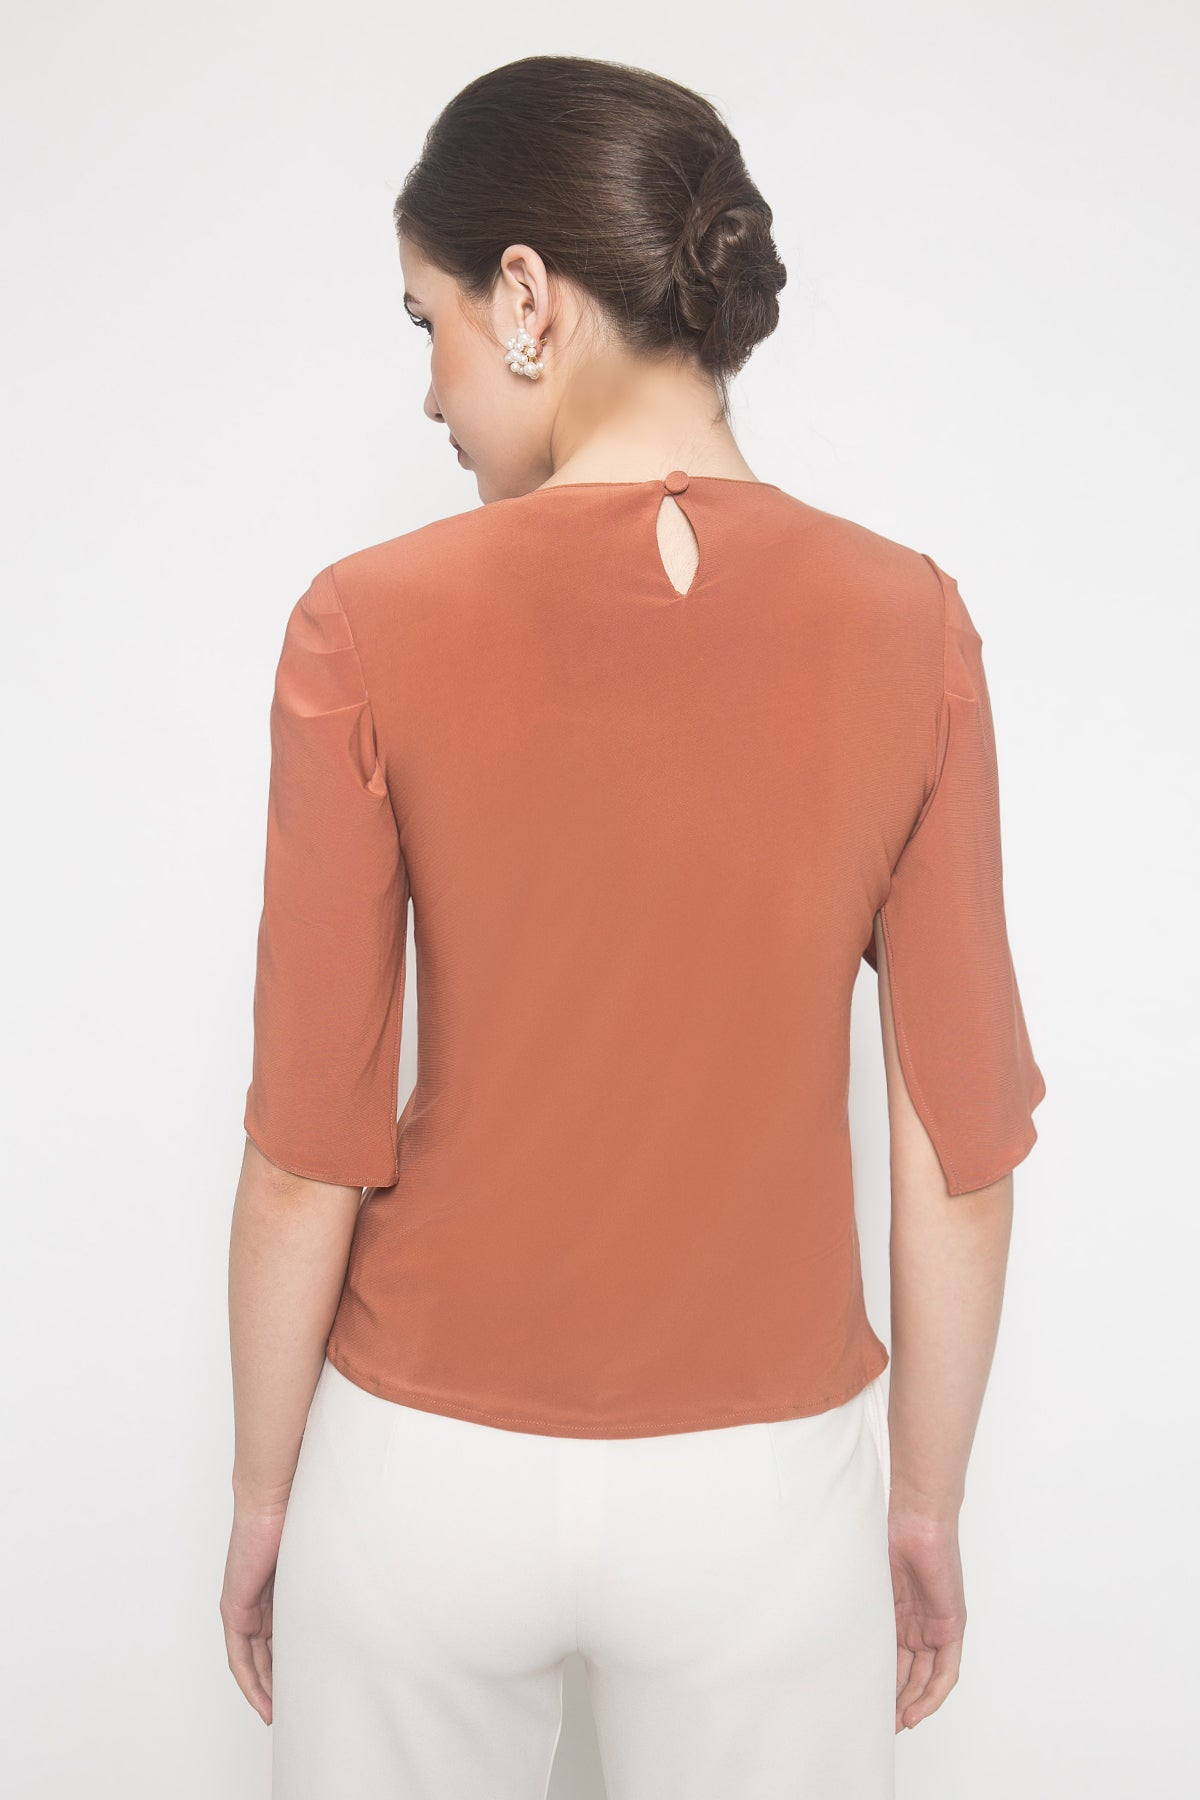 Inca Cowl Top in Coral